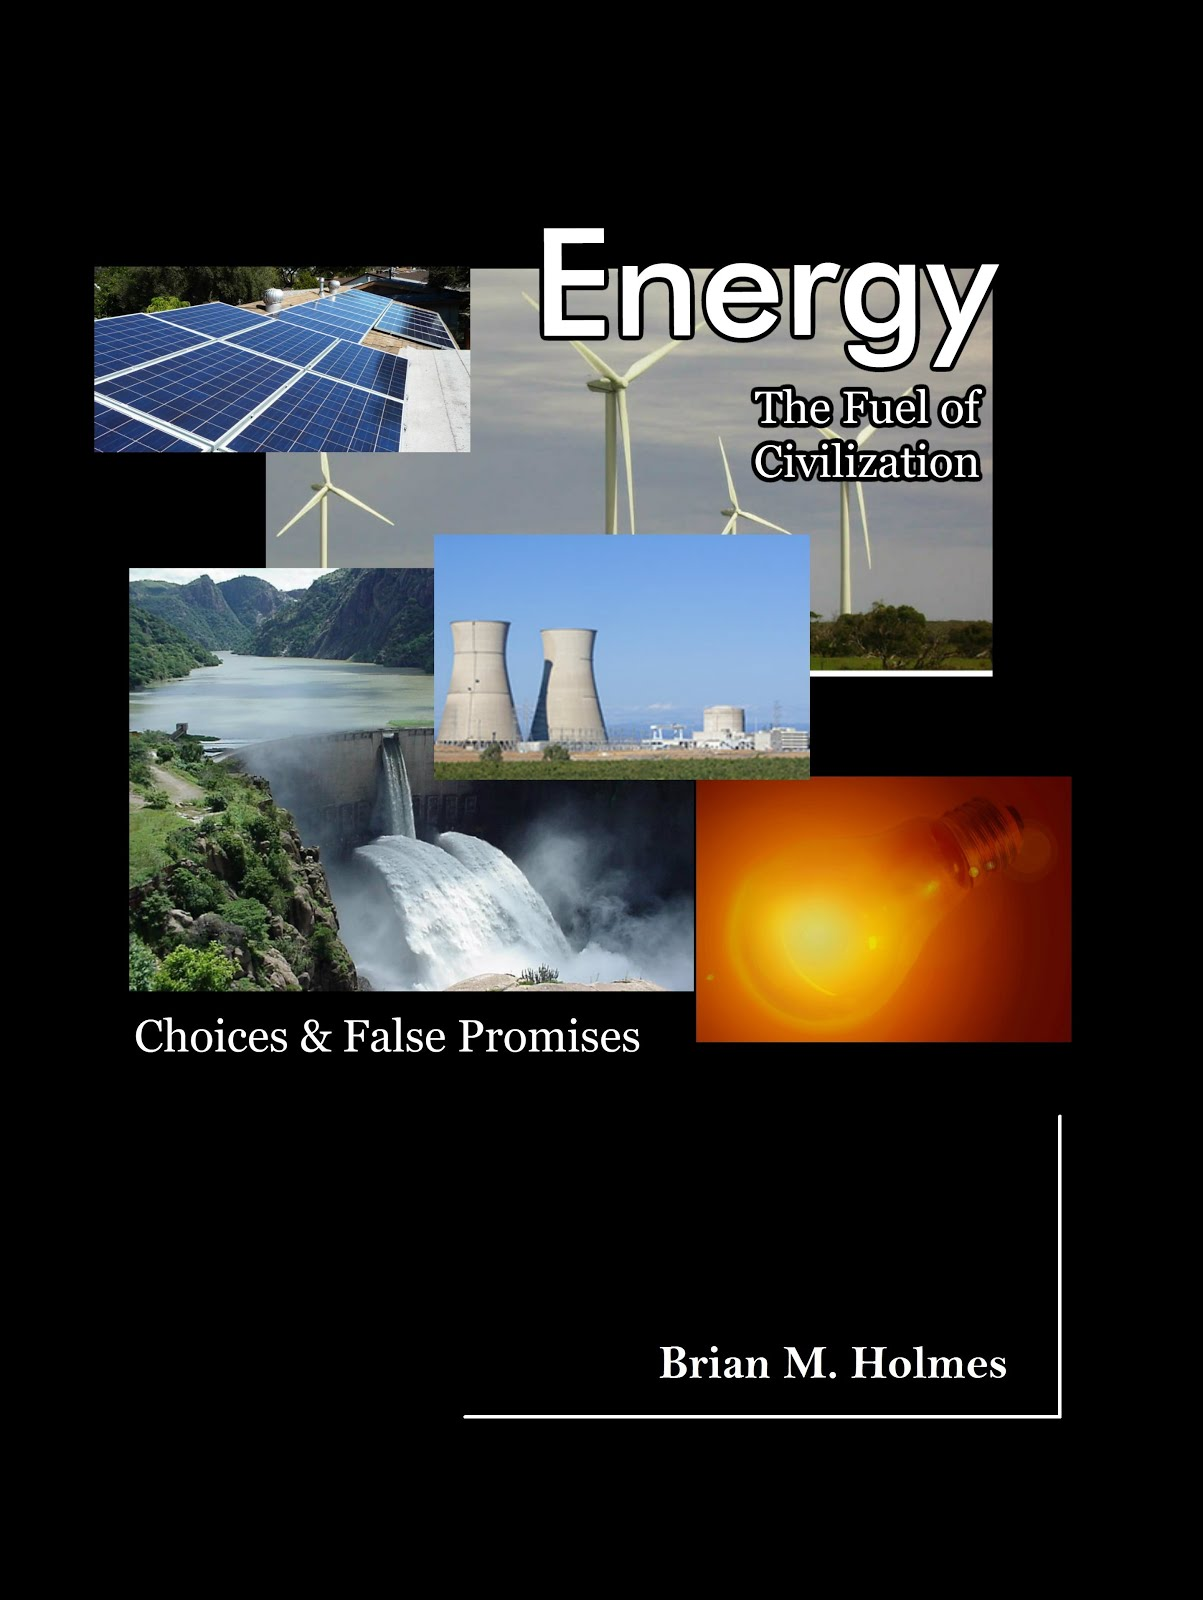 Energy: The Fuel of Civilization